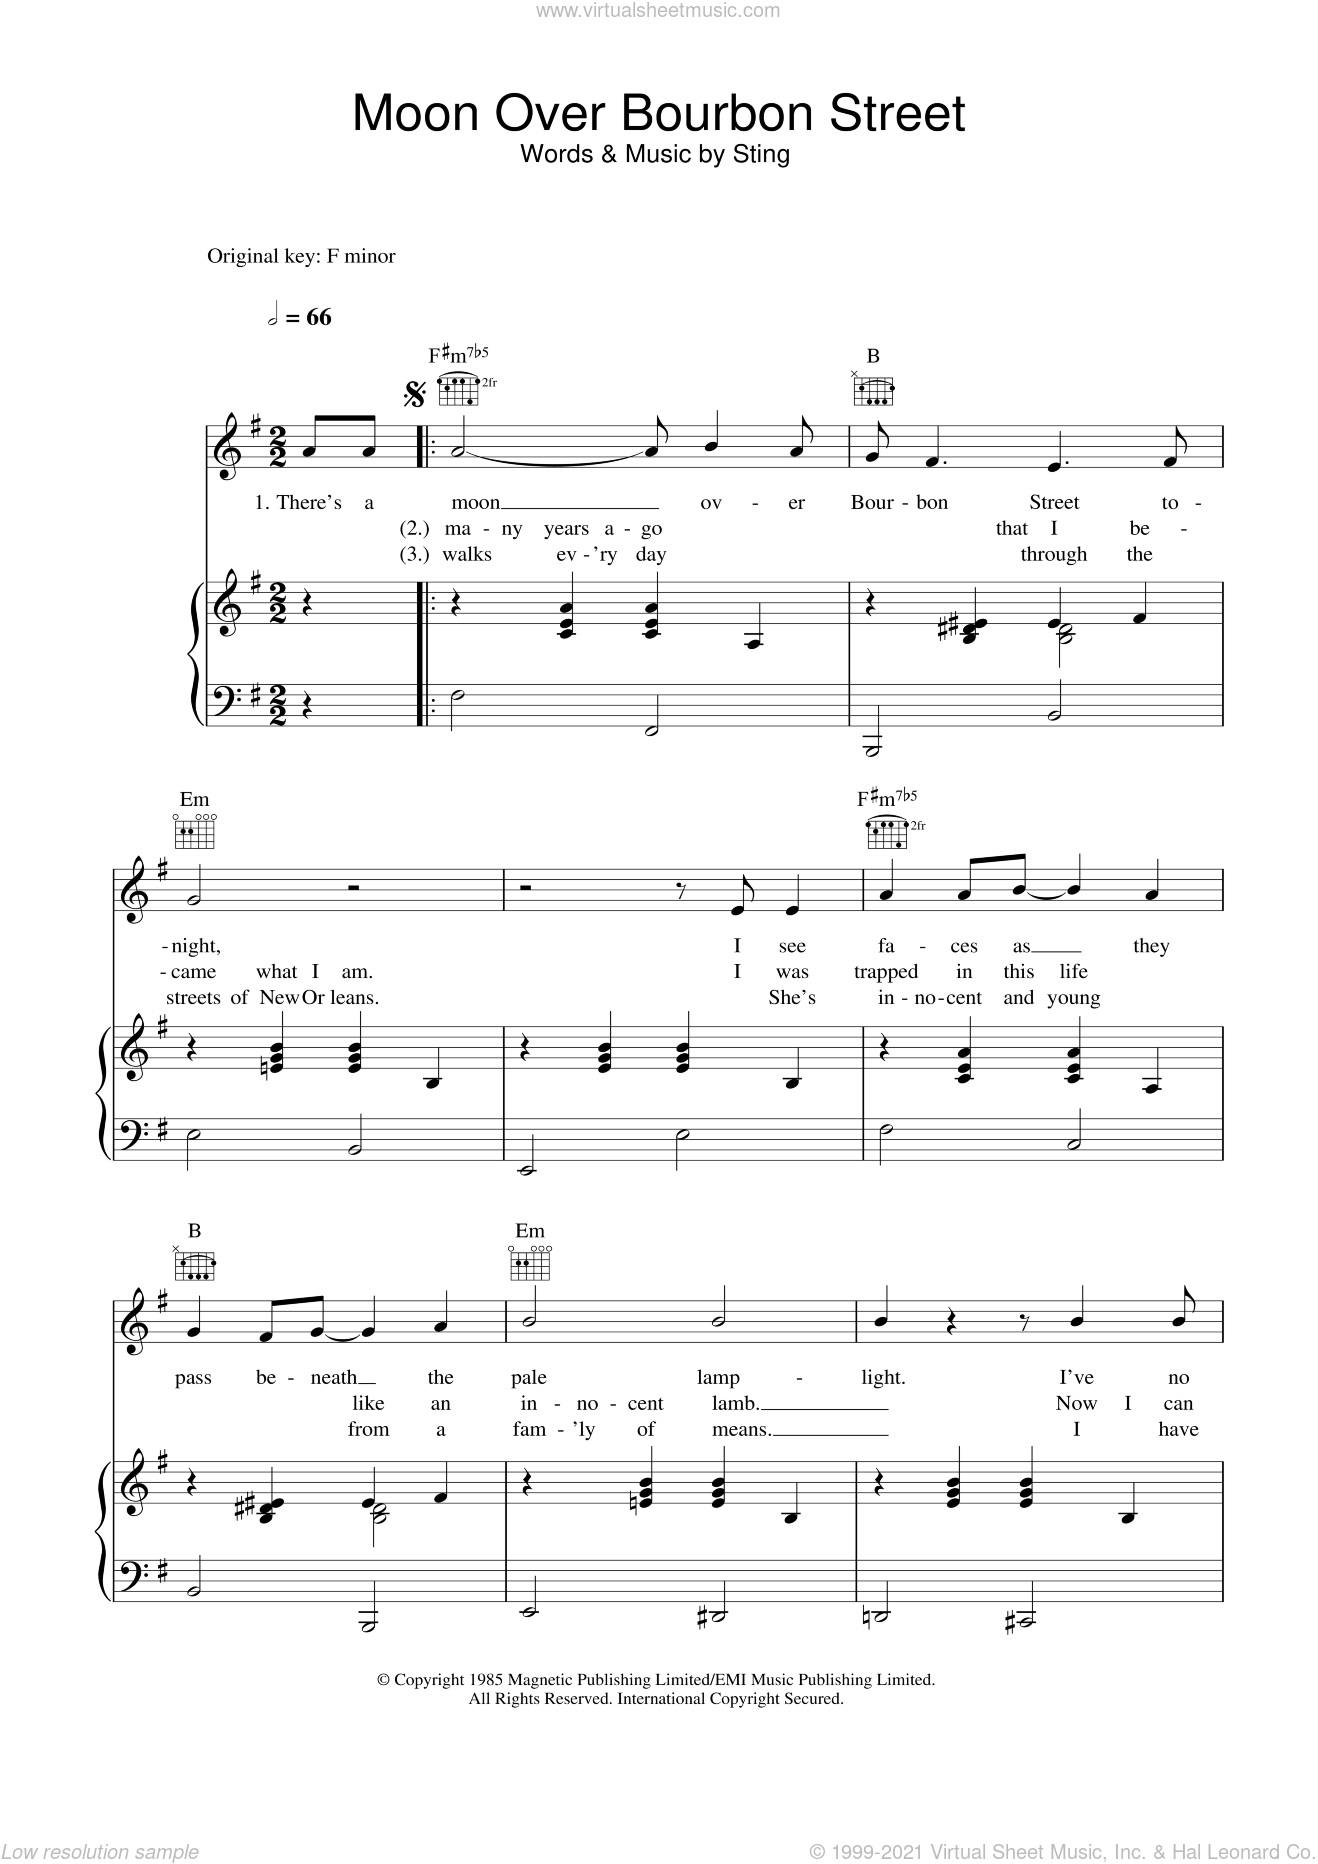 Moon Over Bourbon Street sheet music for voice, piano or guitar by Sting, intermediate skill level